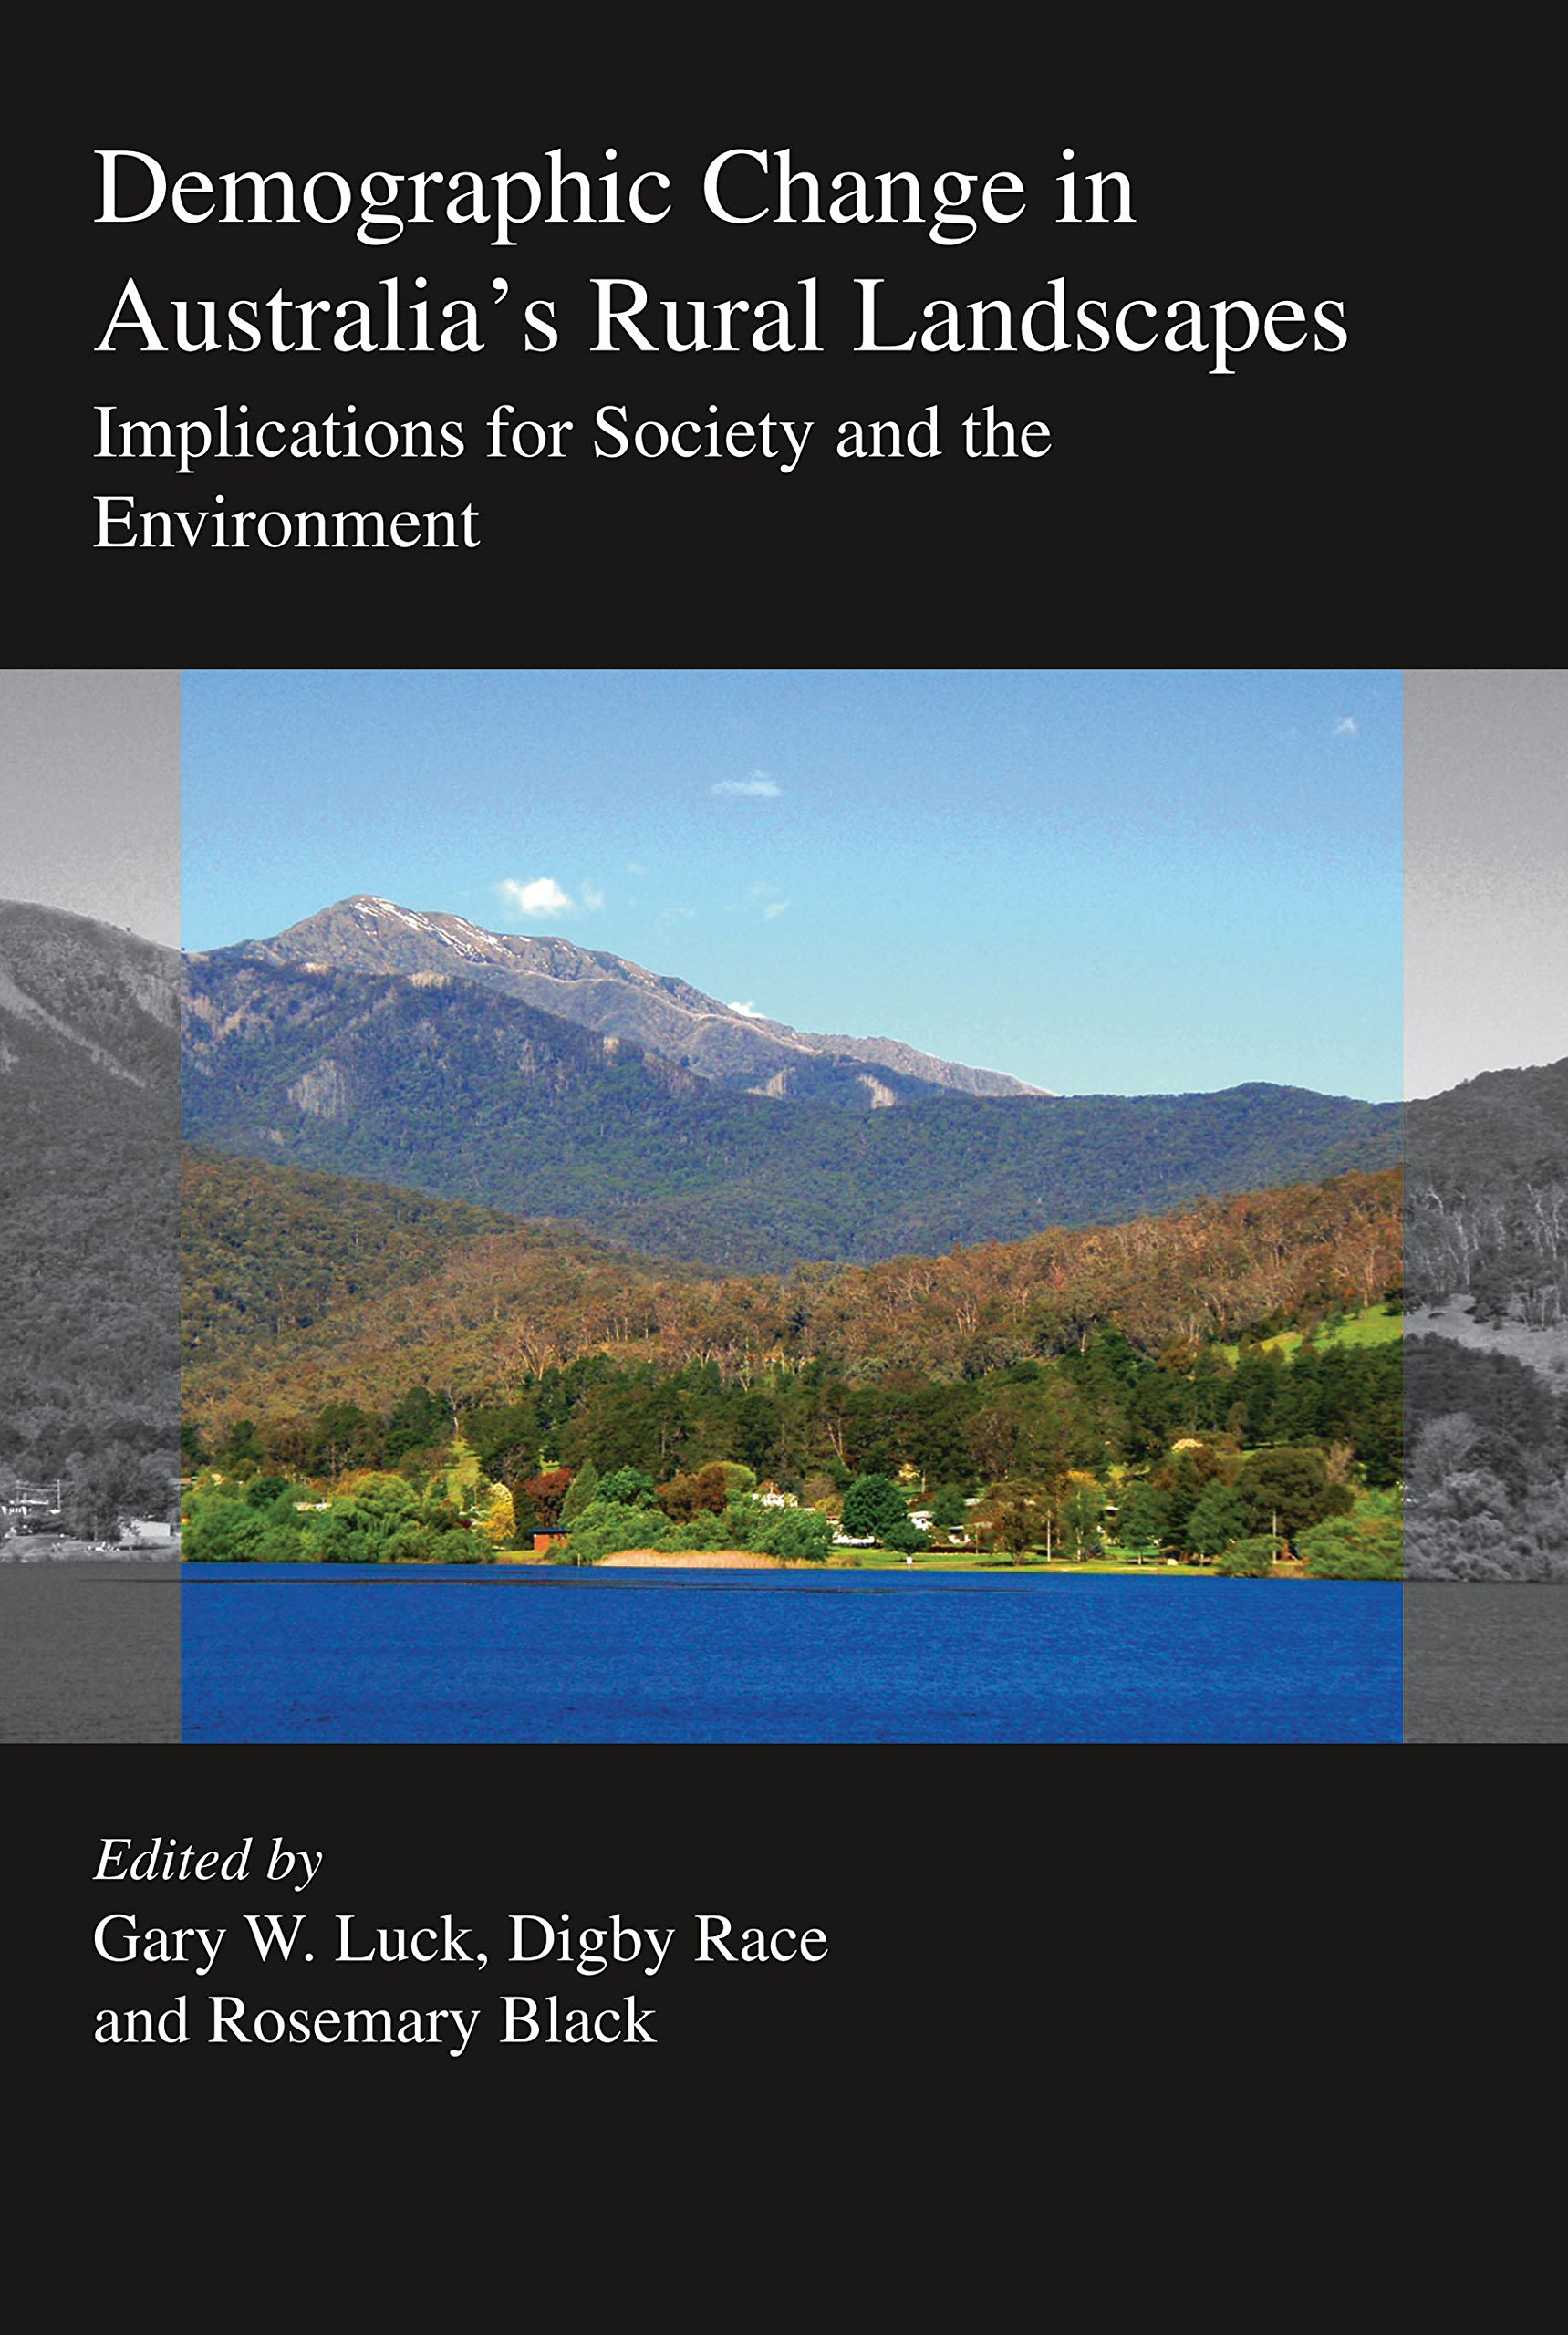 Demographic Change in Australia's Rural Landscapes: Implications for Society and the Environment